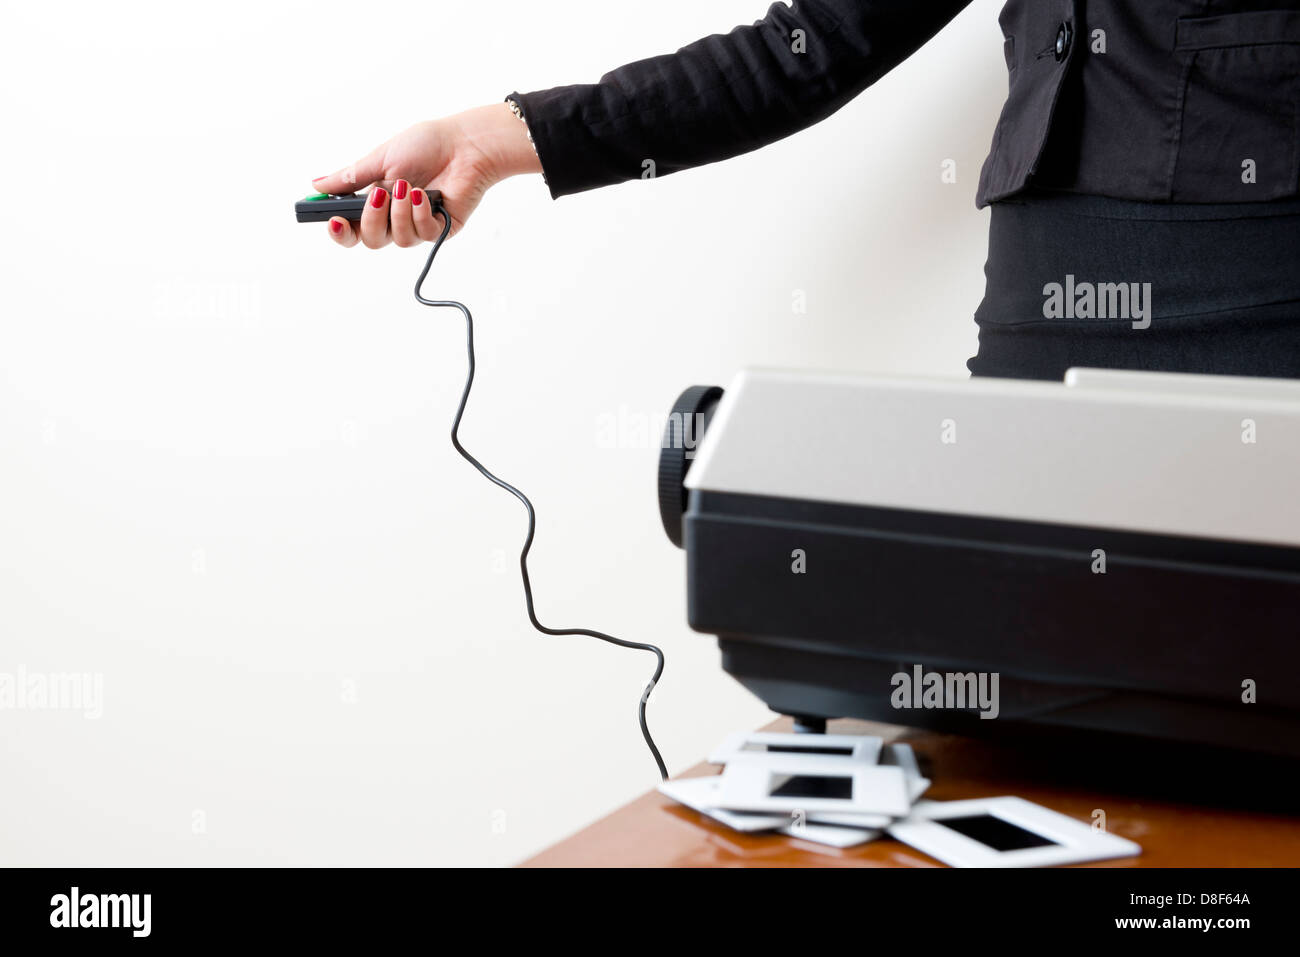 Business woman operating a slide projector against a white wall - Stock Image